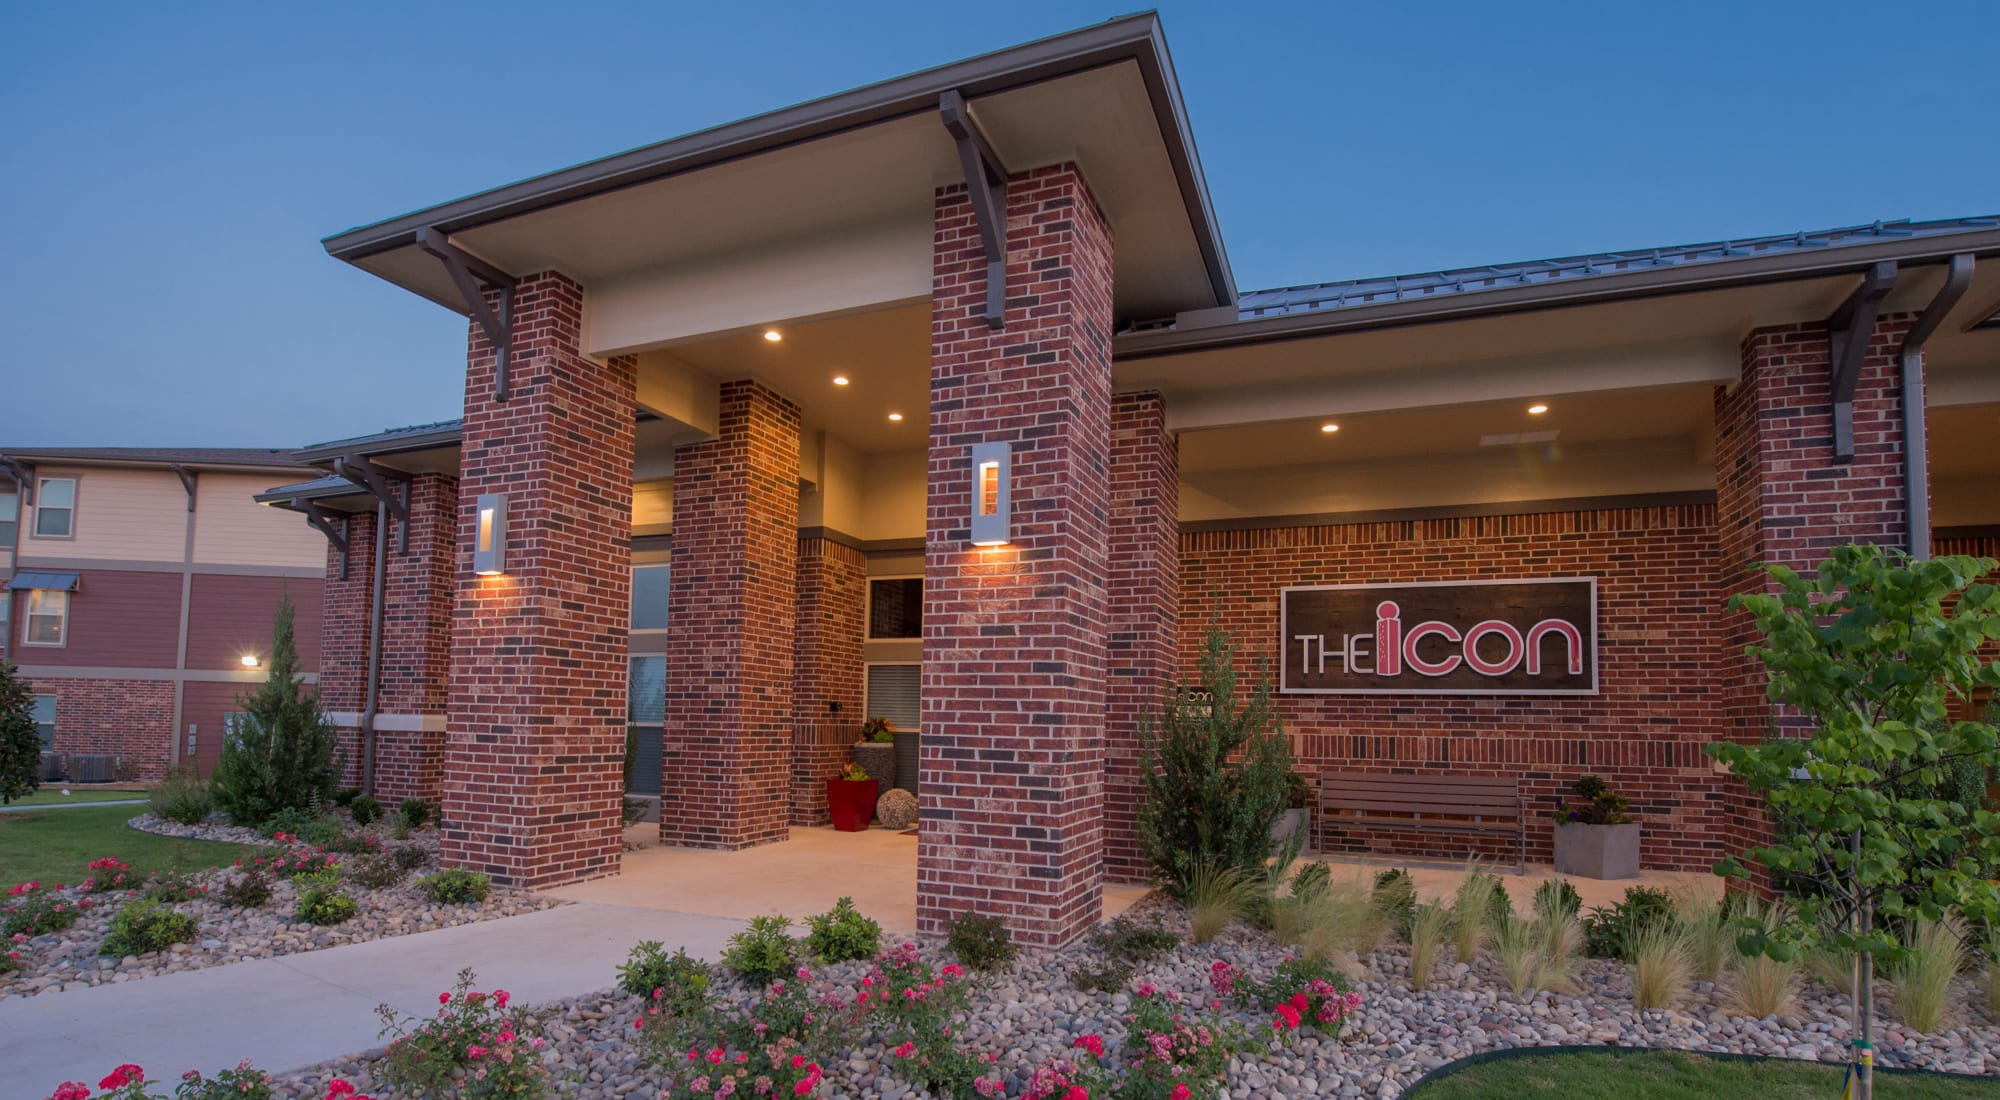 Icon at Hewitt apartments in Hewitt, Texas